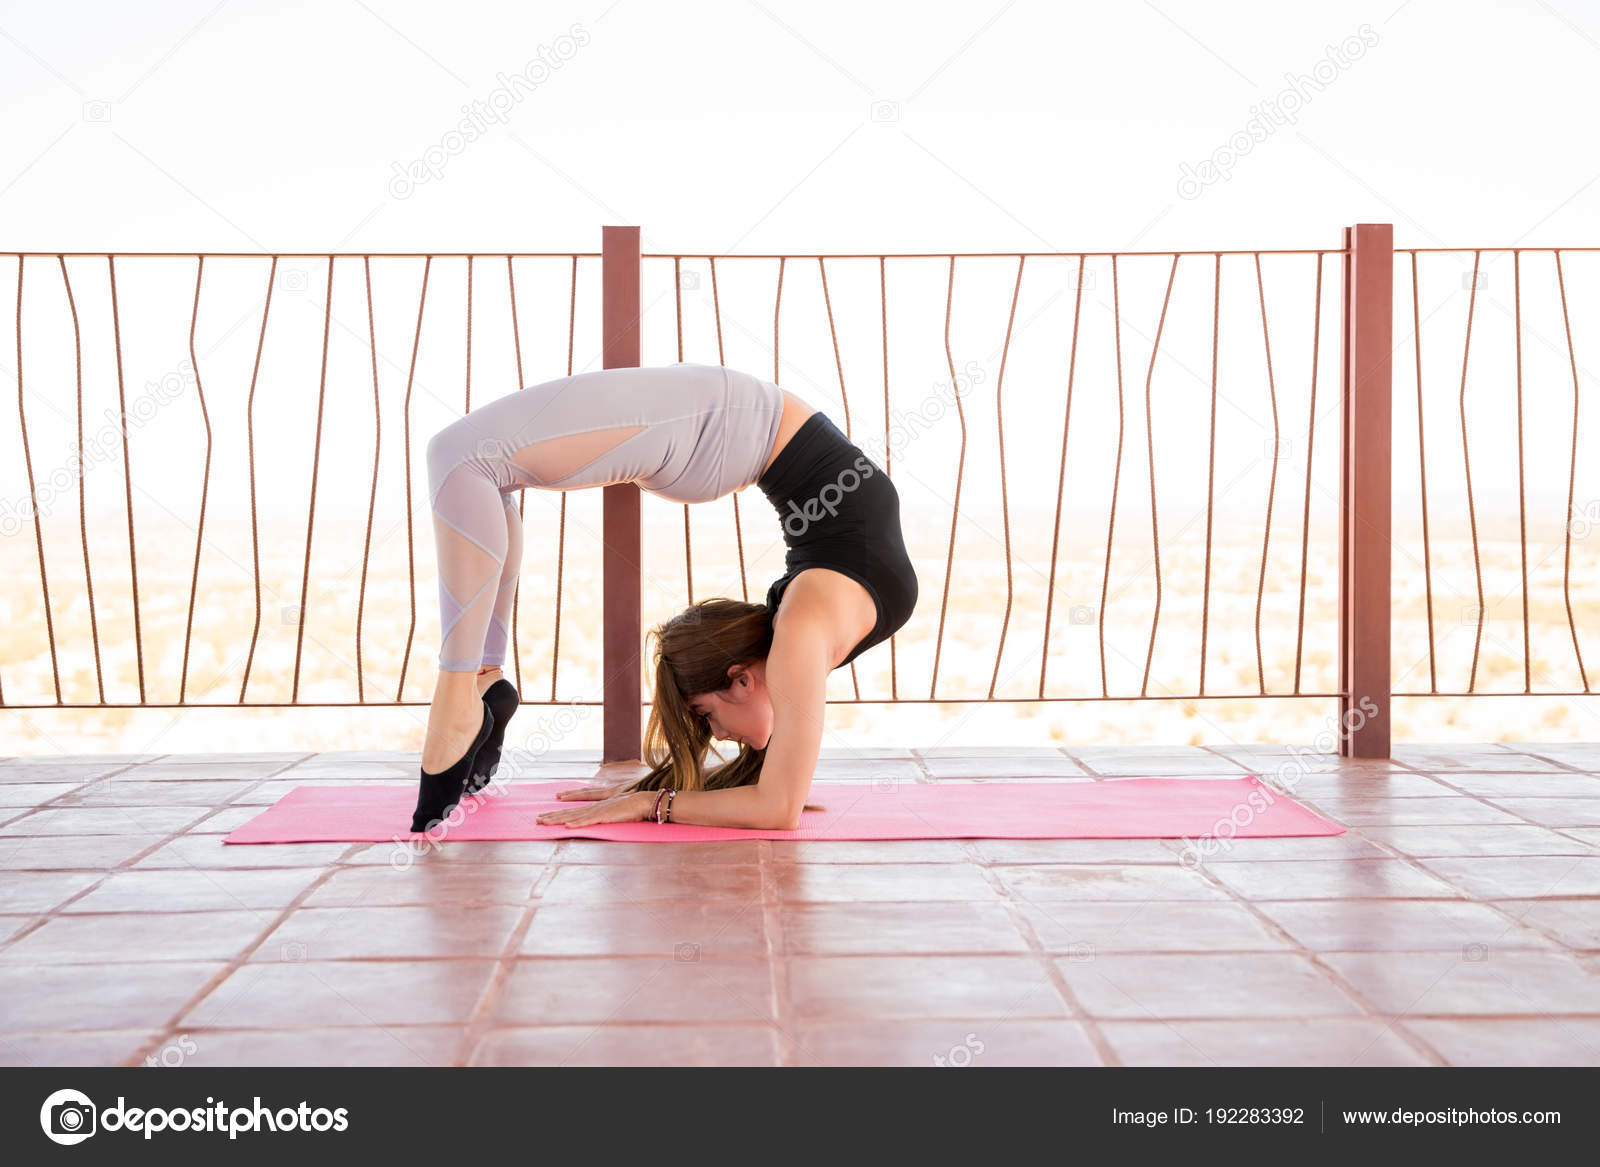 a98e5afffb928 Portrait Young Woman Doing Scorpion Pose Maintaining Balance Her Yoga —  Stock Photo